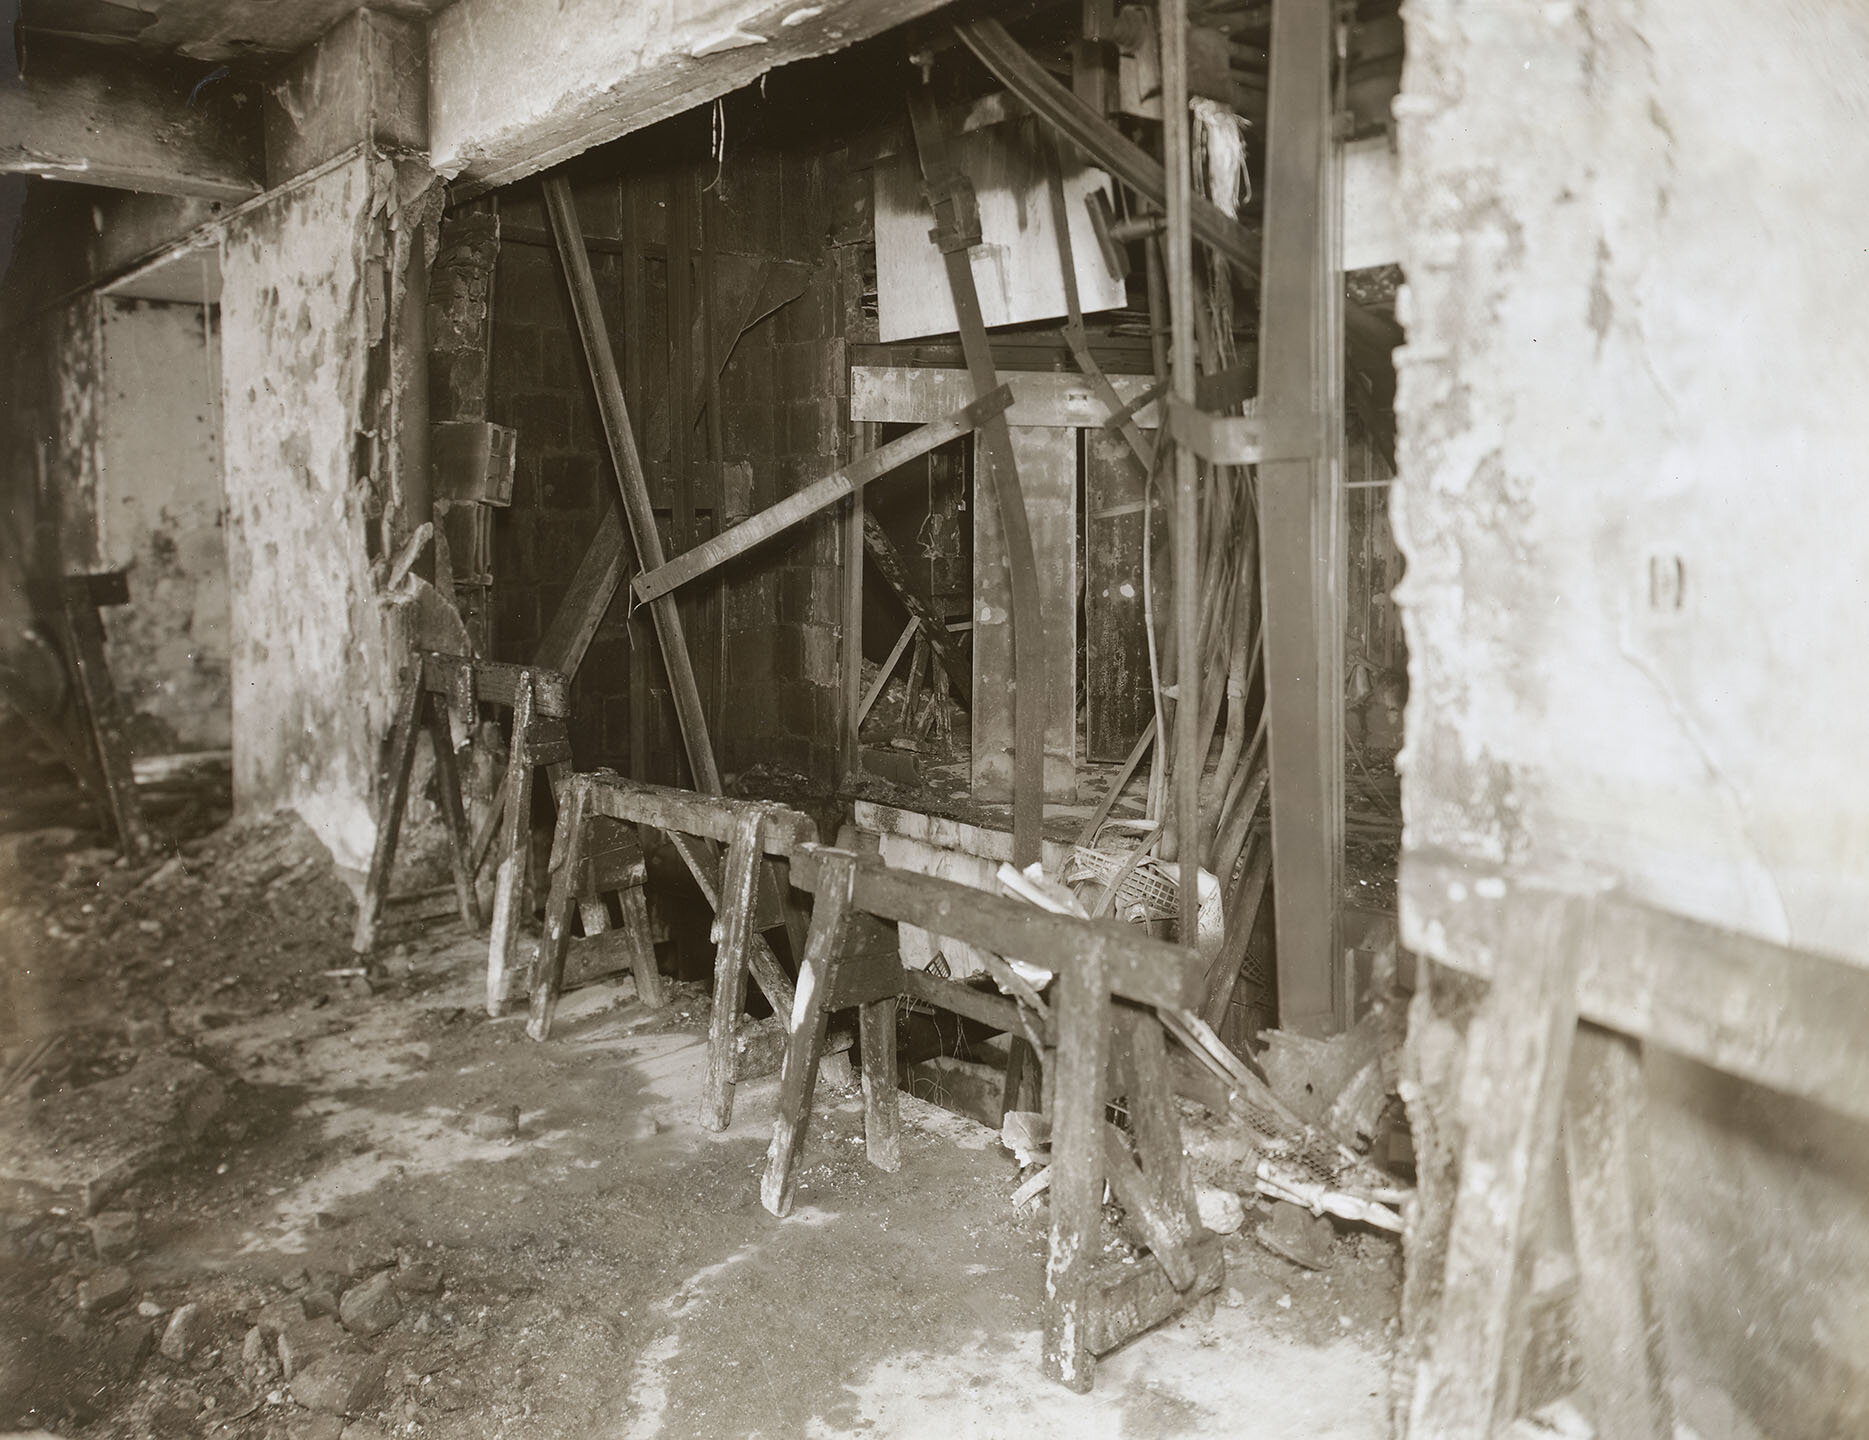 Empire State Building Disaster: Interior, 79th Fl. 12:55 pm, July 28, 1945. Hole in south wall where plane crashed into elevators. Mayor LaGuardia Collection, NYC Municipal Archives.